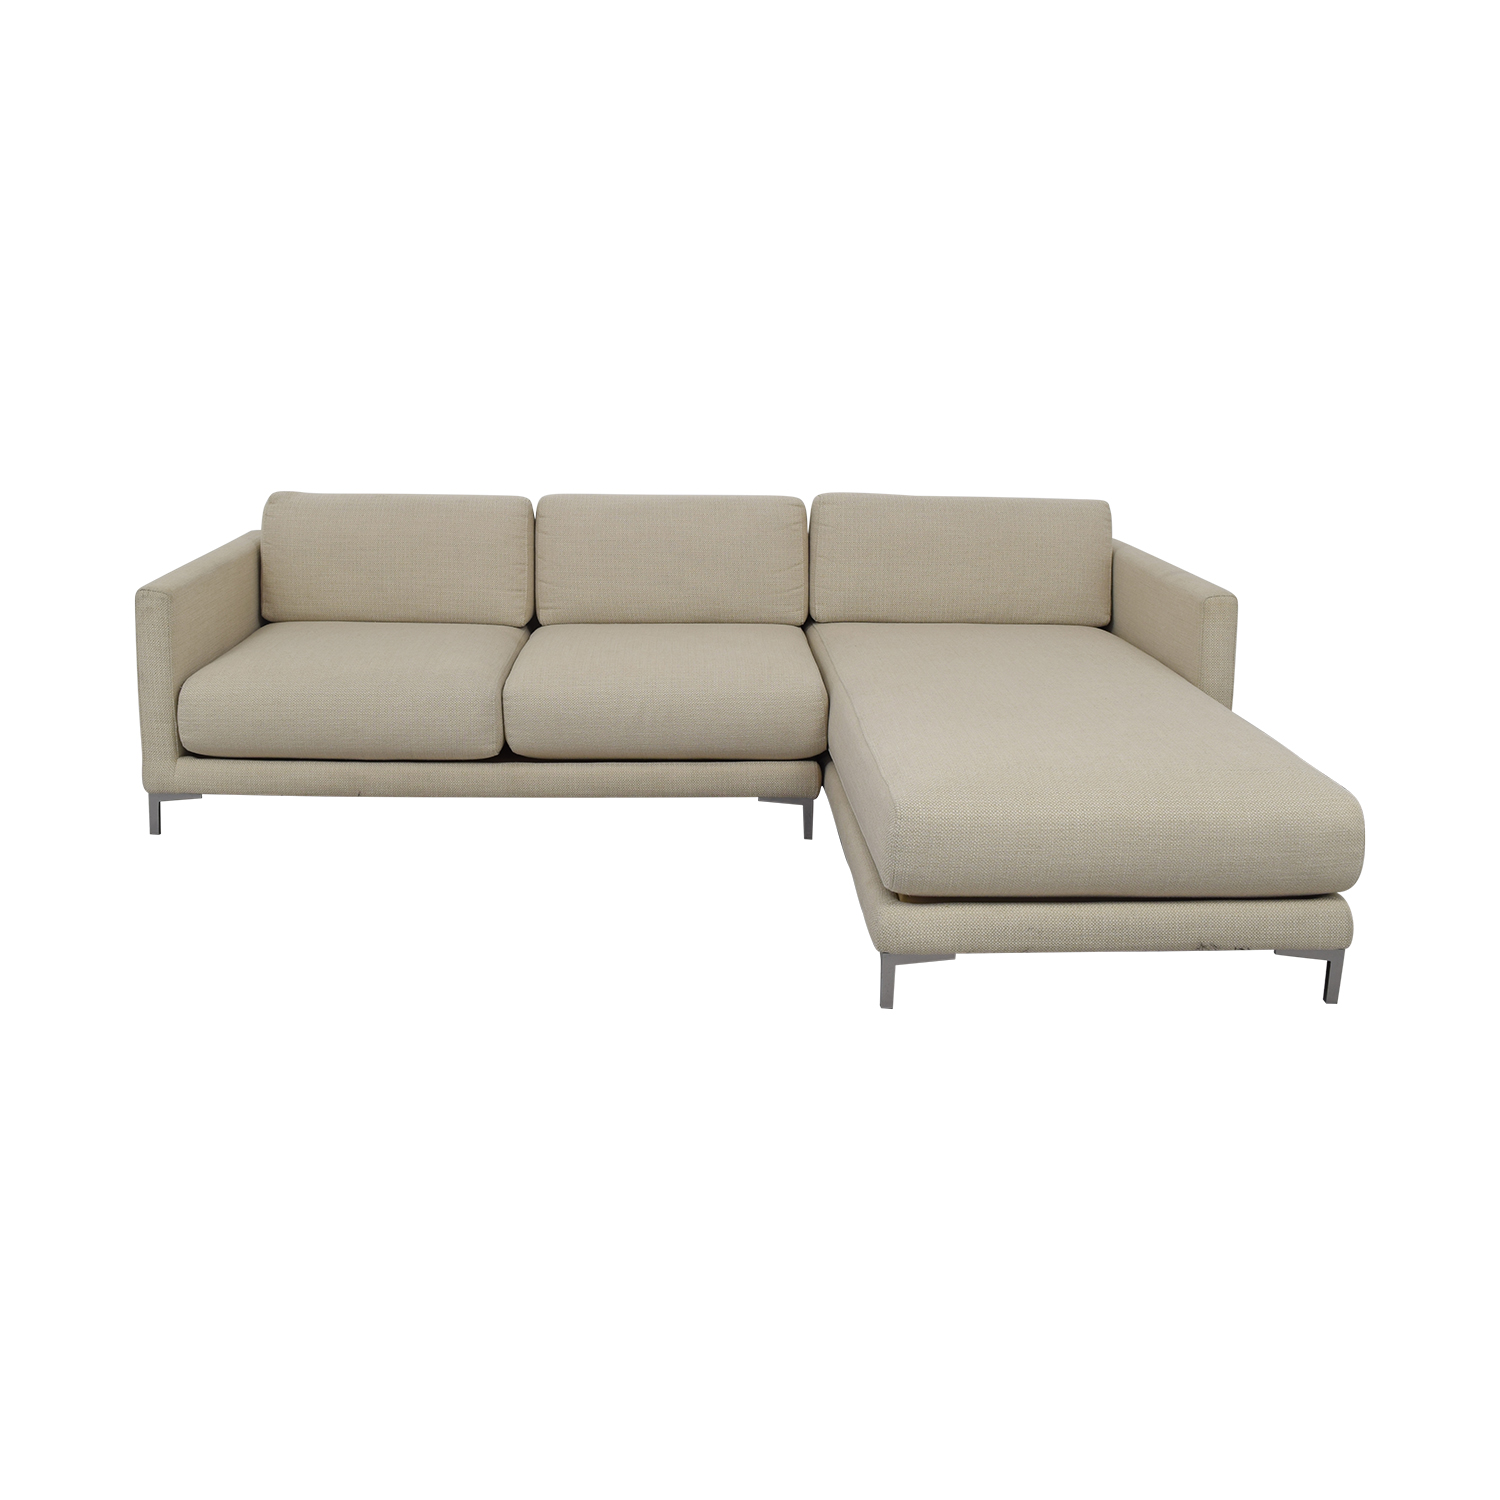 CB2 CB2 District Sectional Sofa with Chaise second hand